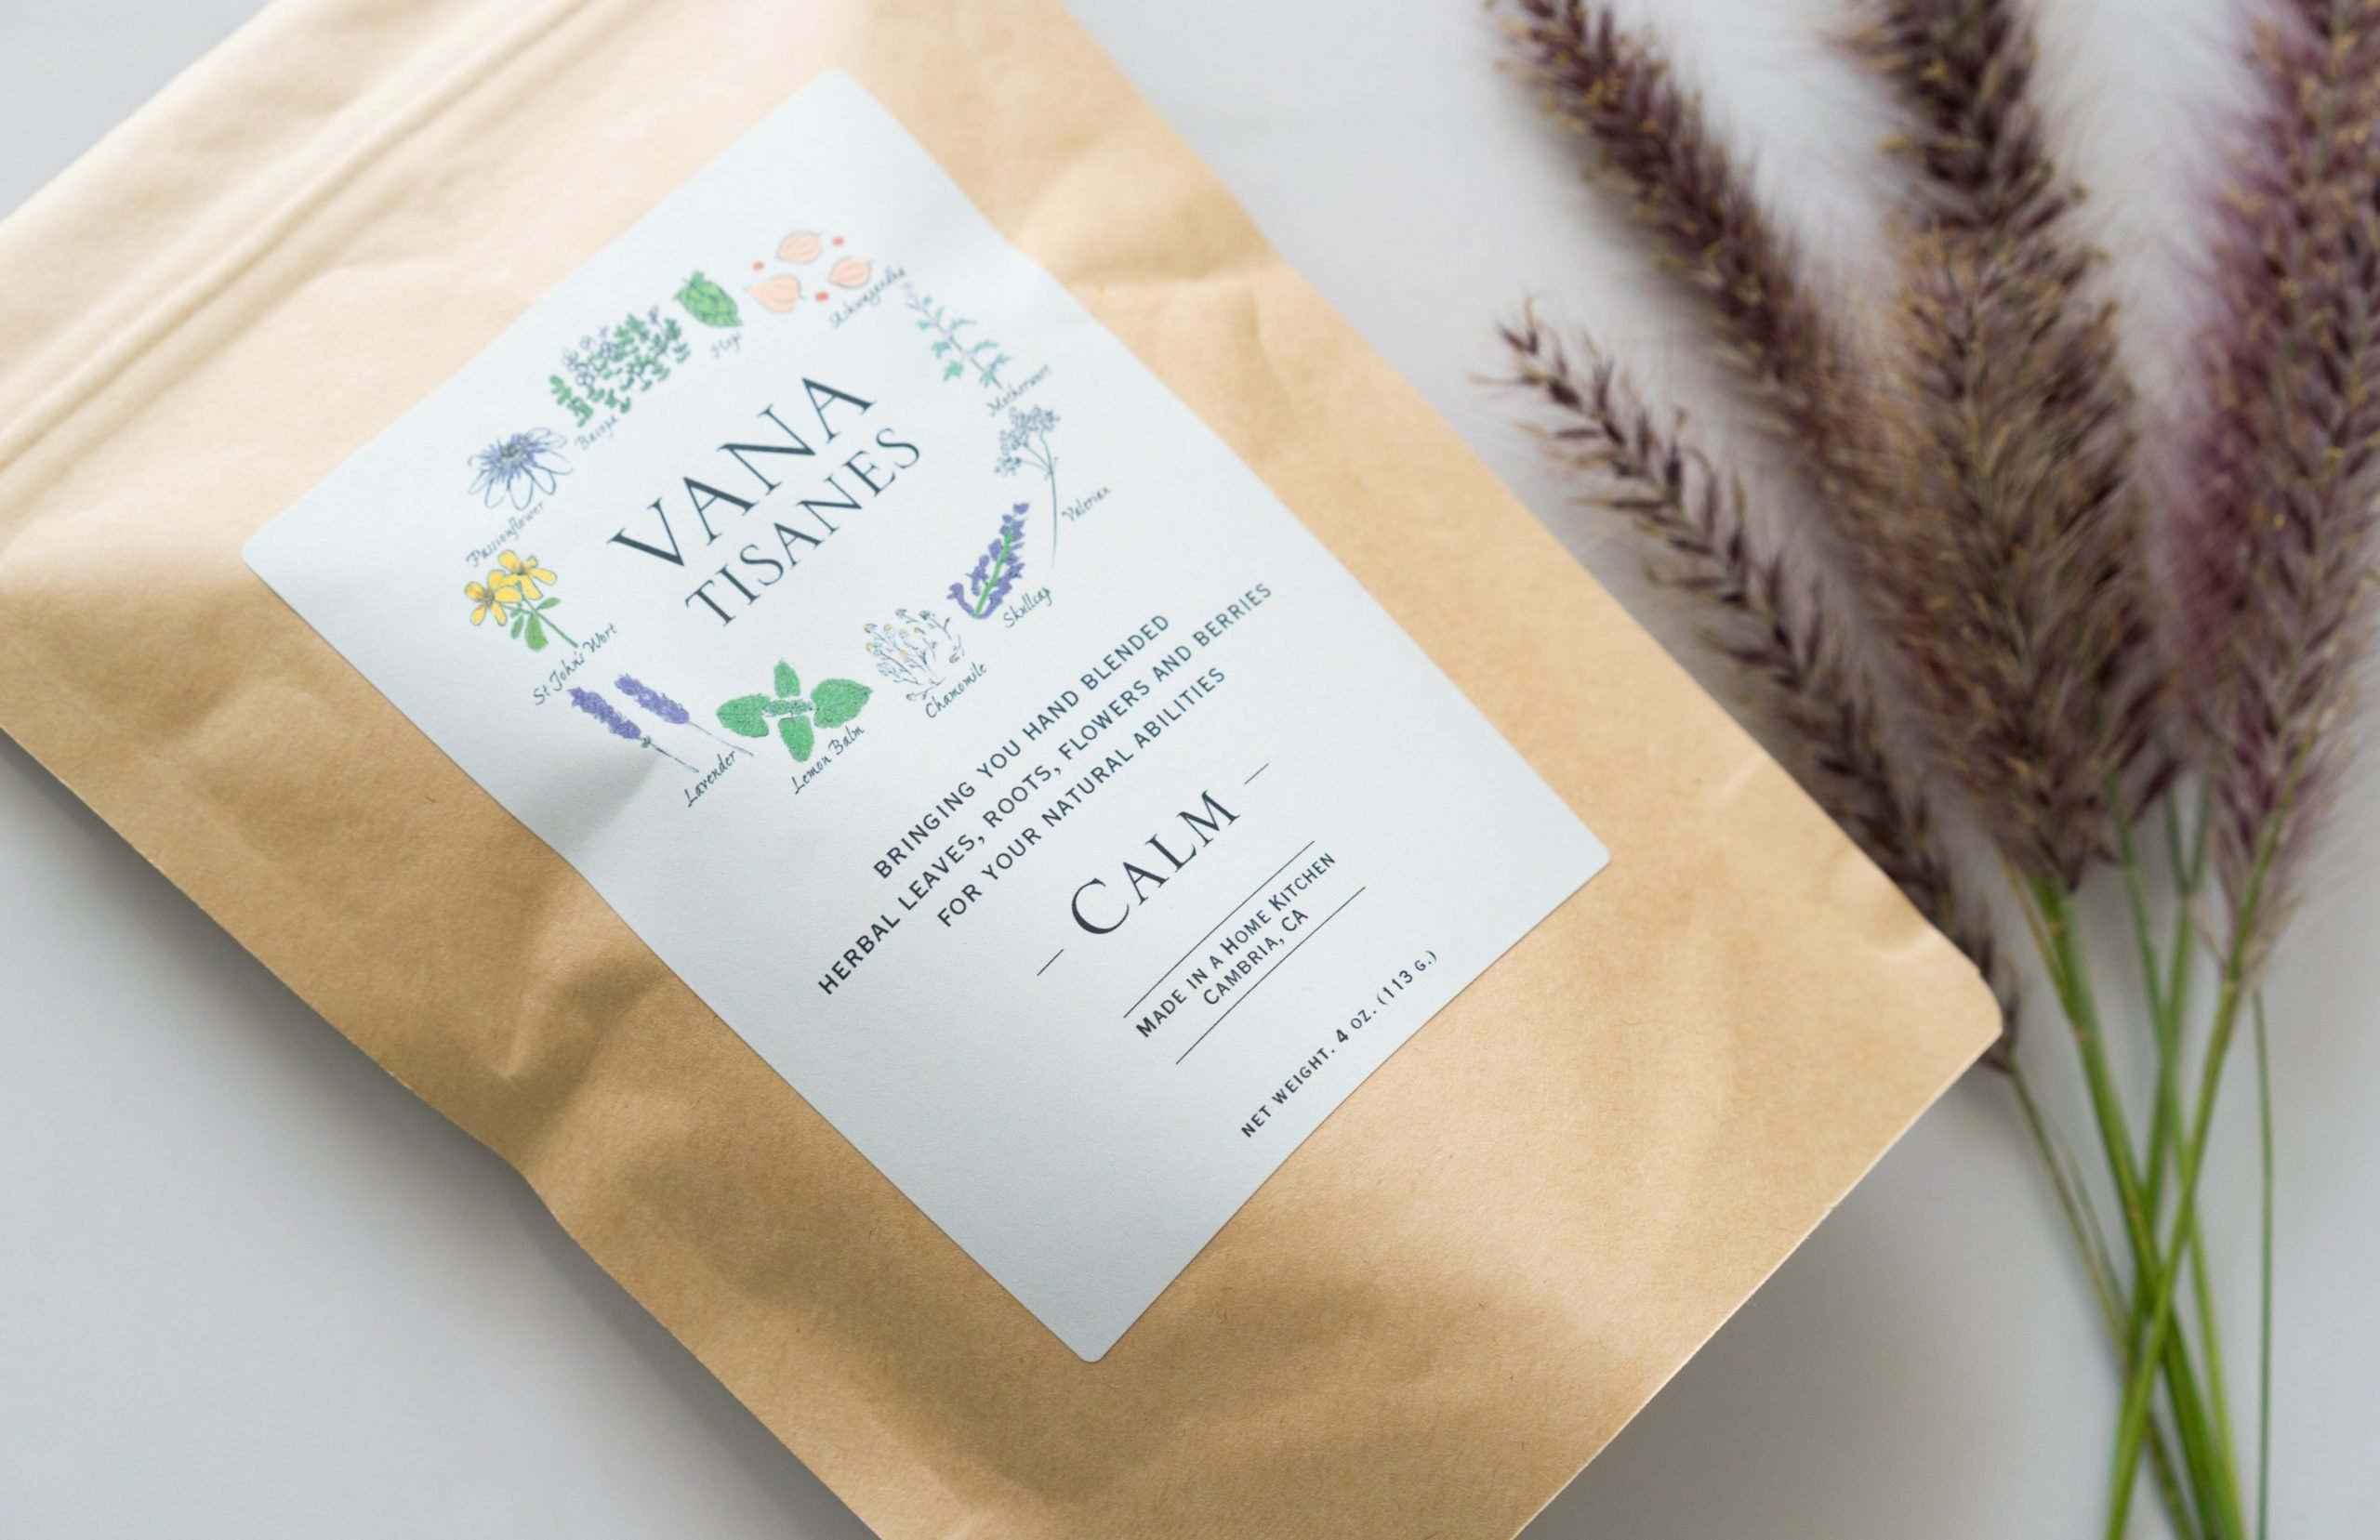 A bag of Calm, our herbal tea blend of the month